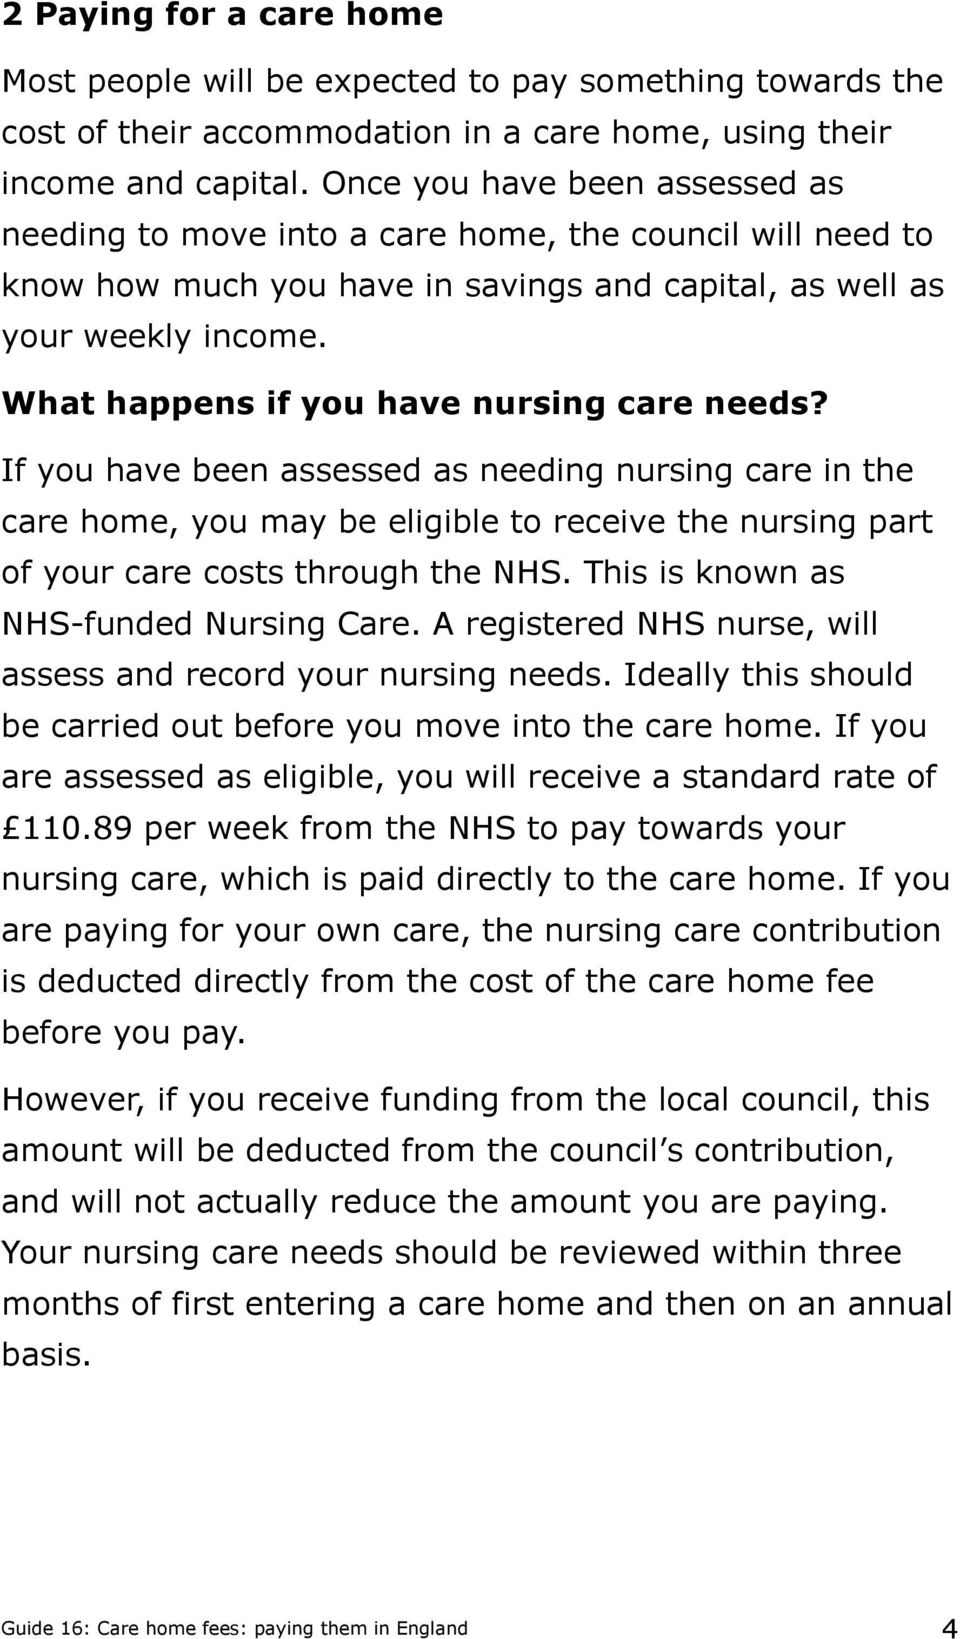 What happens if you have nursing care needs? If you have been assessed as needing nursing care in the care home, you may be eligible to receive the nursing part of your care costs through the NHS.